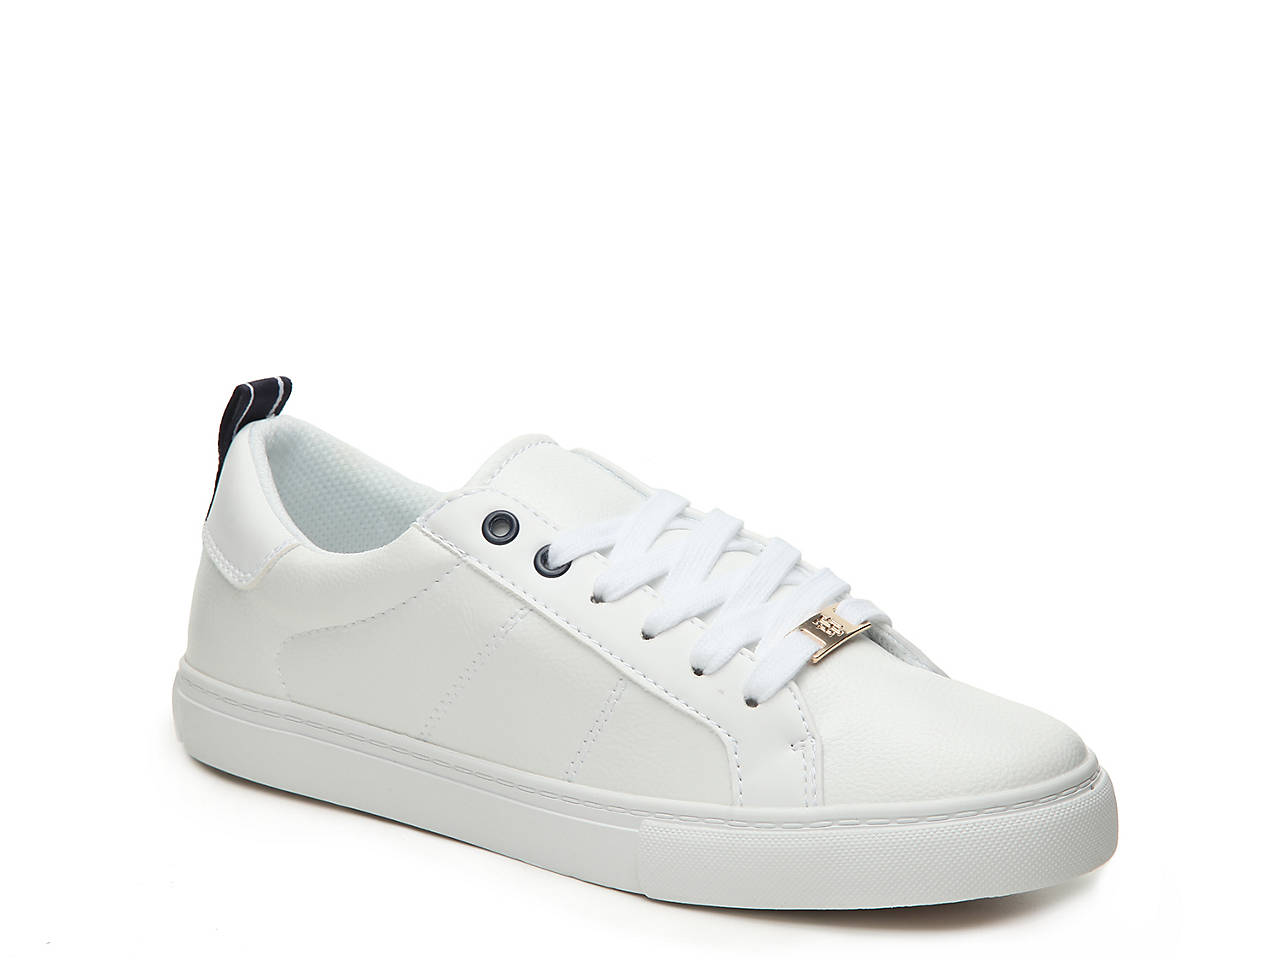 dfa86459a Tommy Hilfiger Lamzey Sneaker Women s Shoes